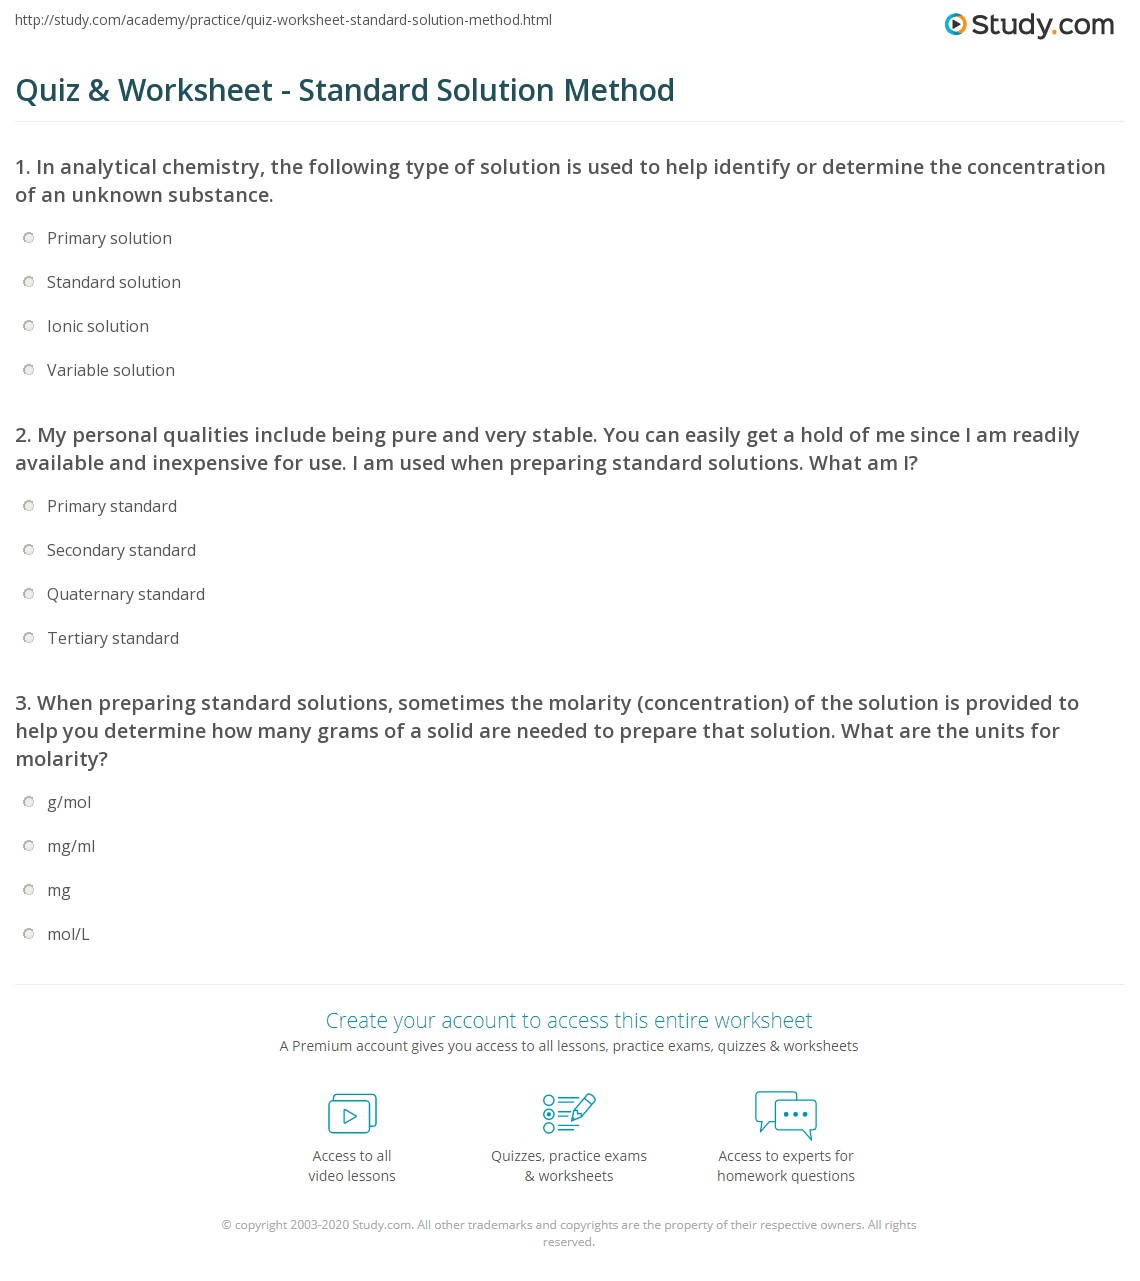 worksheet Concentration Worksheet quiz worksheet standard solution method study com 1 my personal qualities include being pure and very stable you can easily get a hold of me since i am readily available inexpensive fo